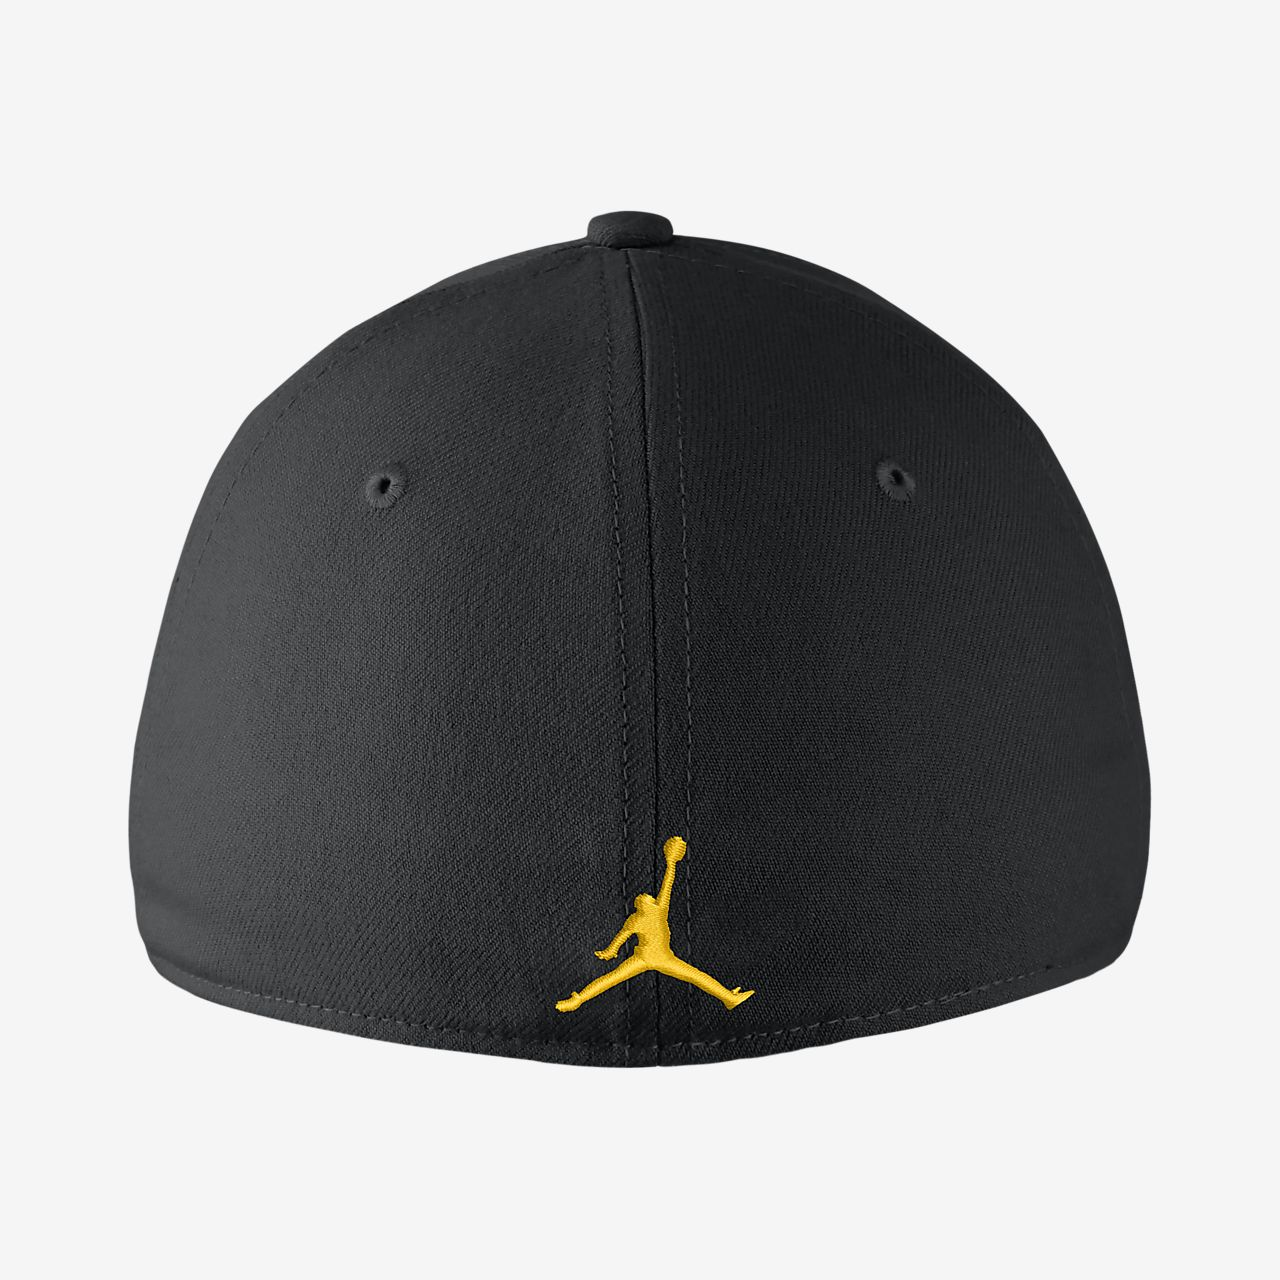 88532cc46b9 ... low price jordanretro 11fitted baseball cap strictly fitteds jordan  college dri fit swoosh flex michigan fitted italy nike ...